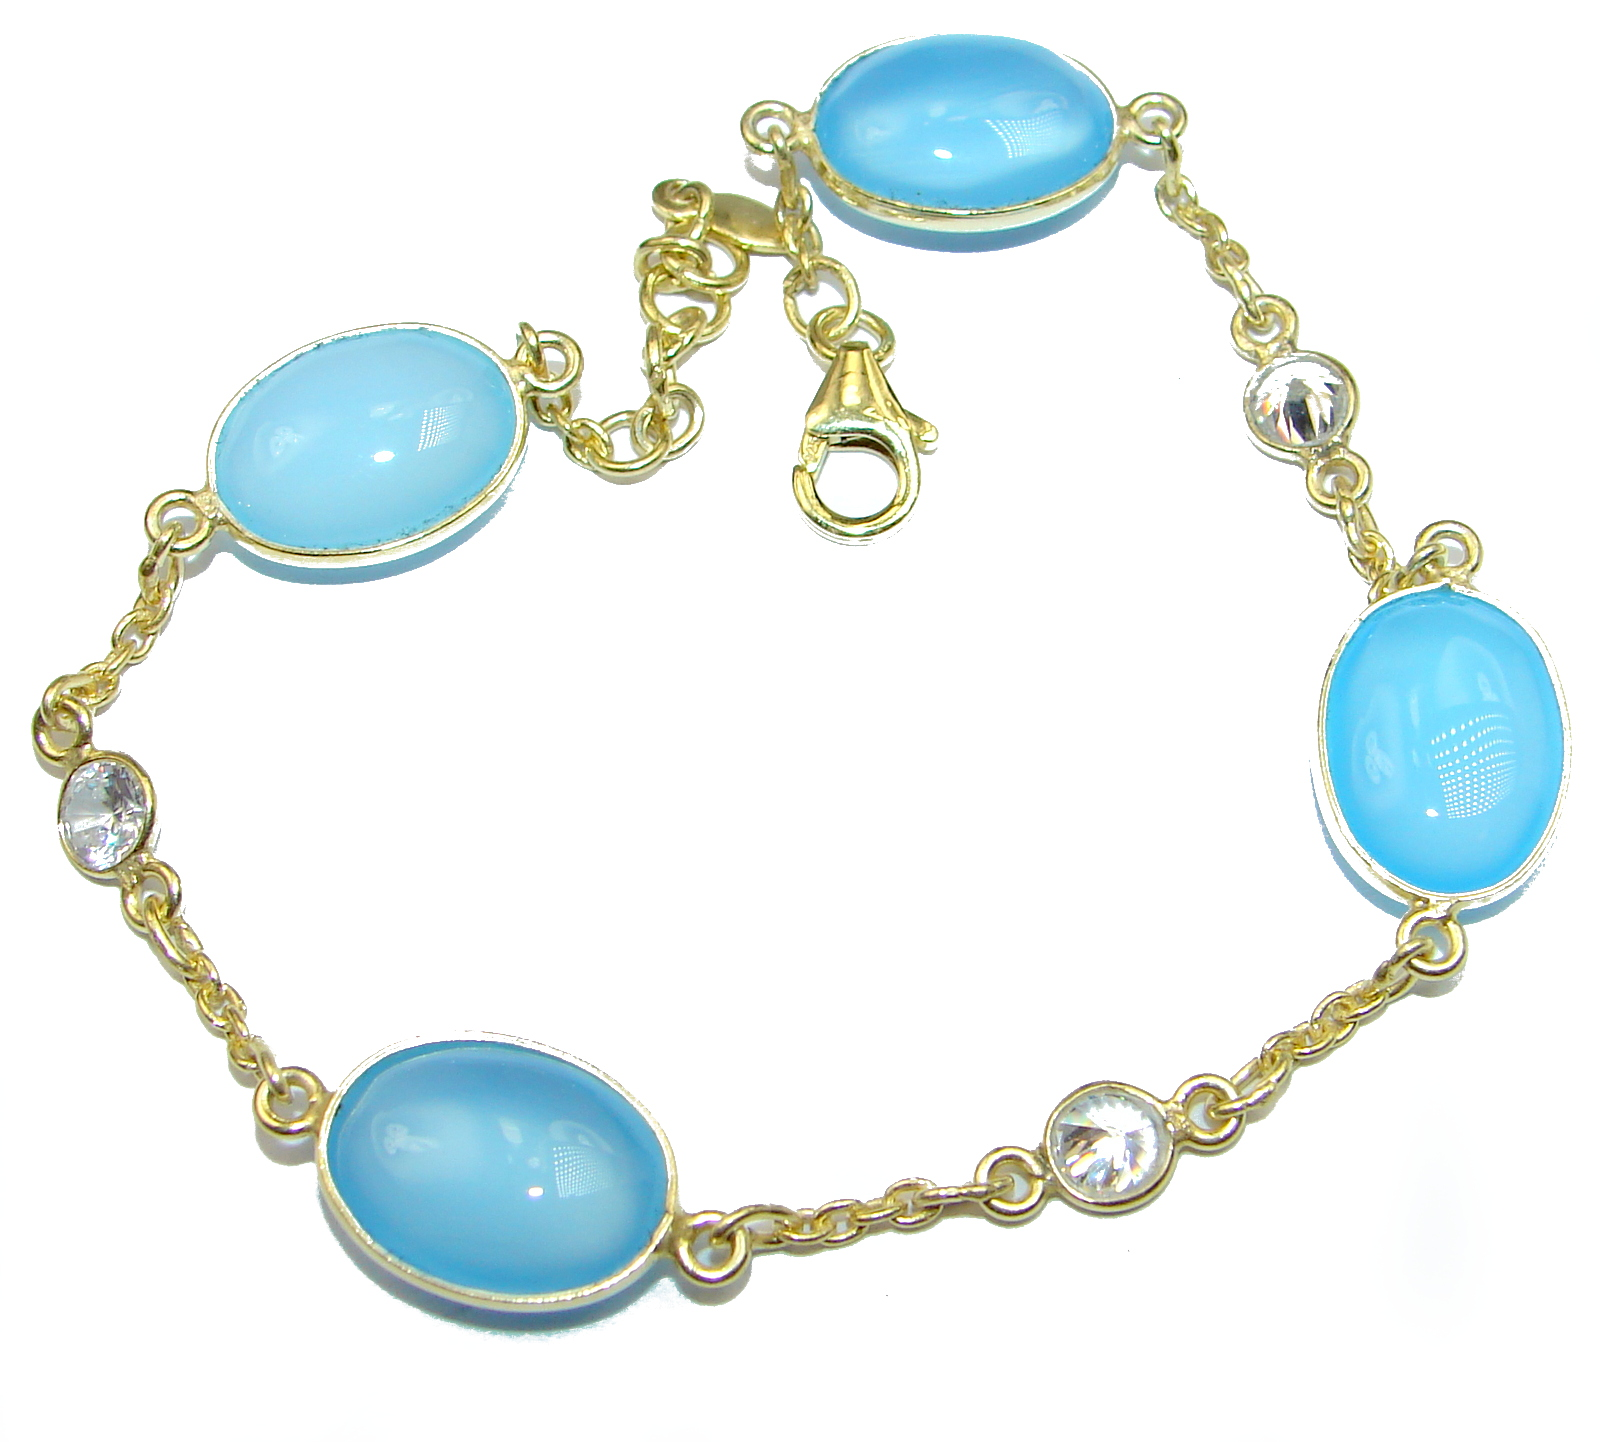 Genuine Chalcedony Agate .925 Sterling Silver handcrafted Bracelet